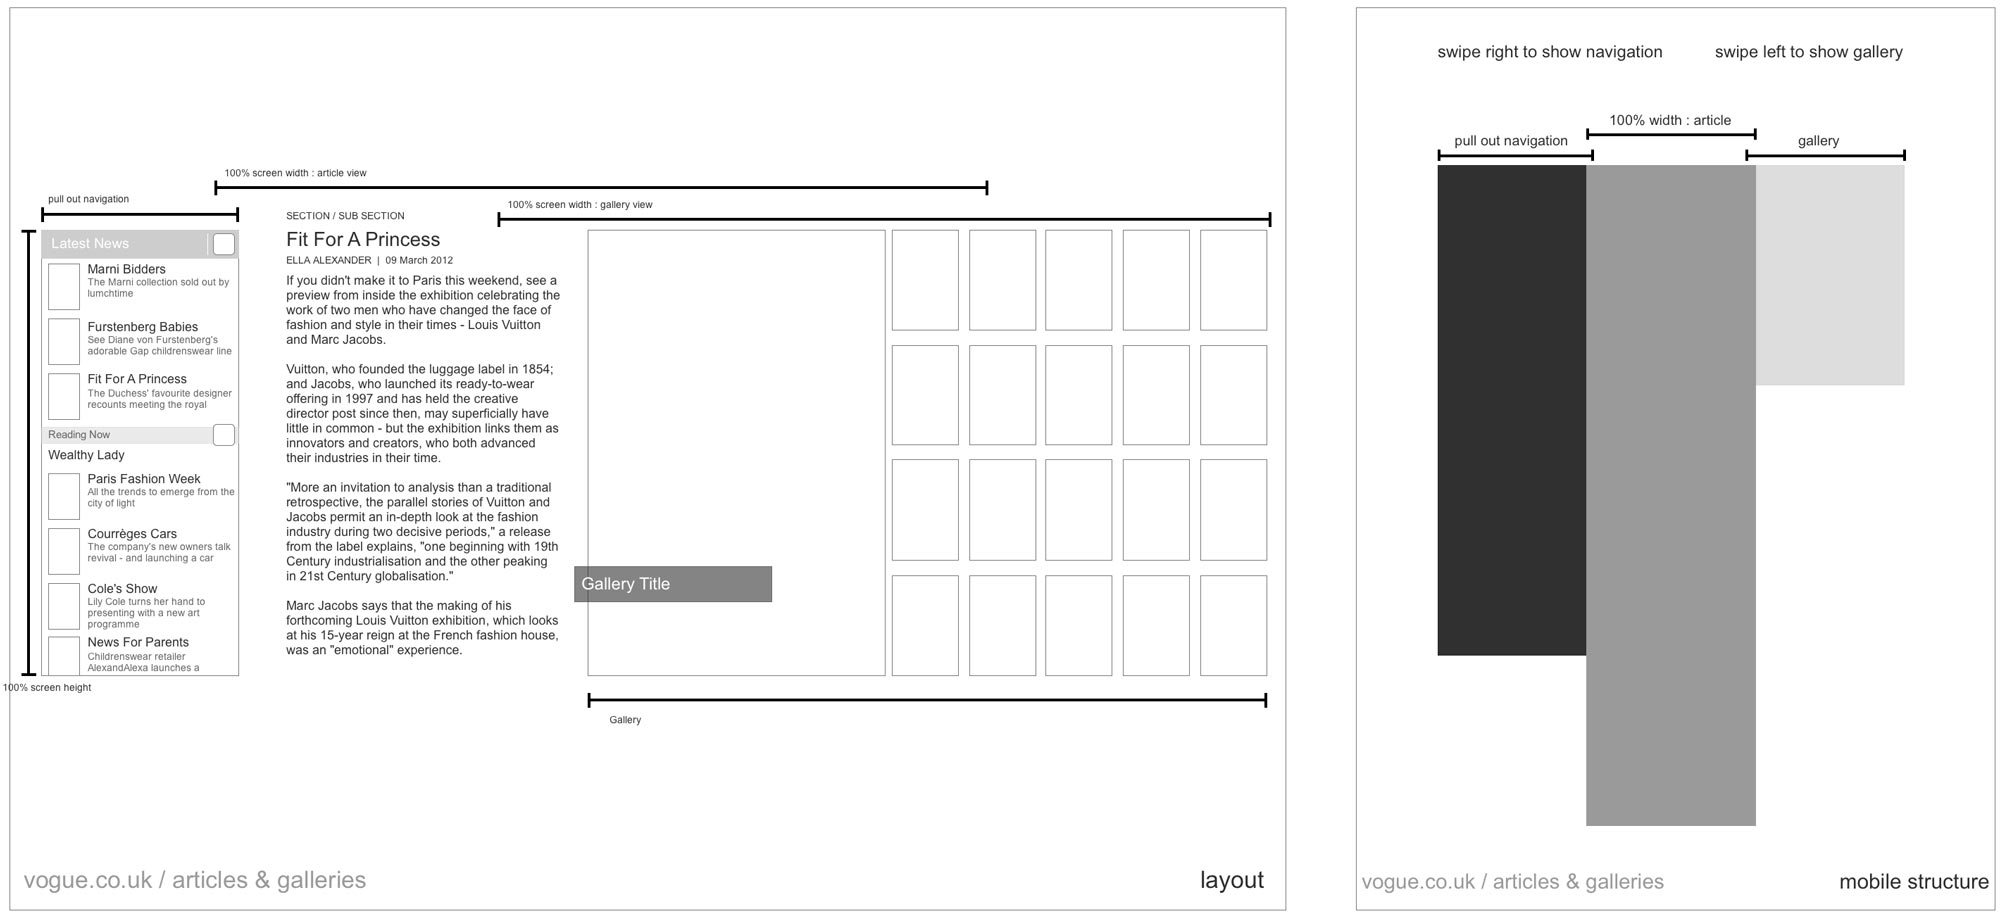 Early wireframes of the Article and Gallery framework